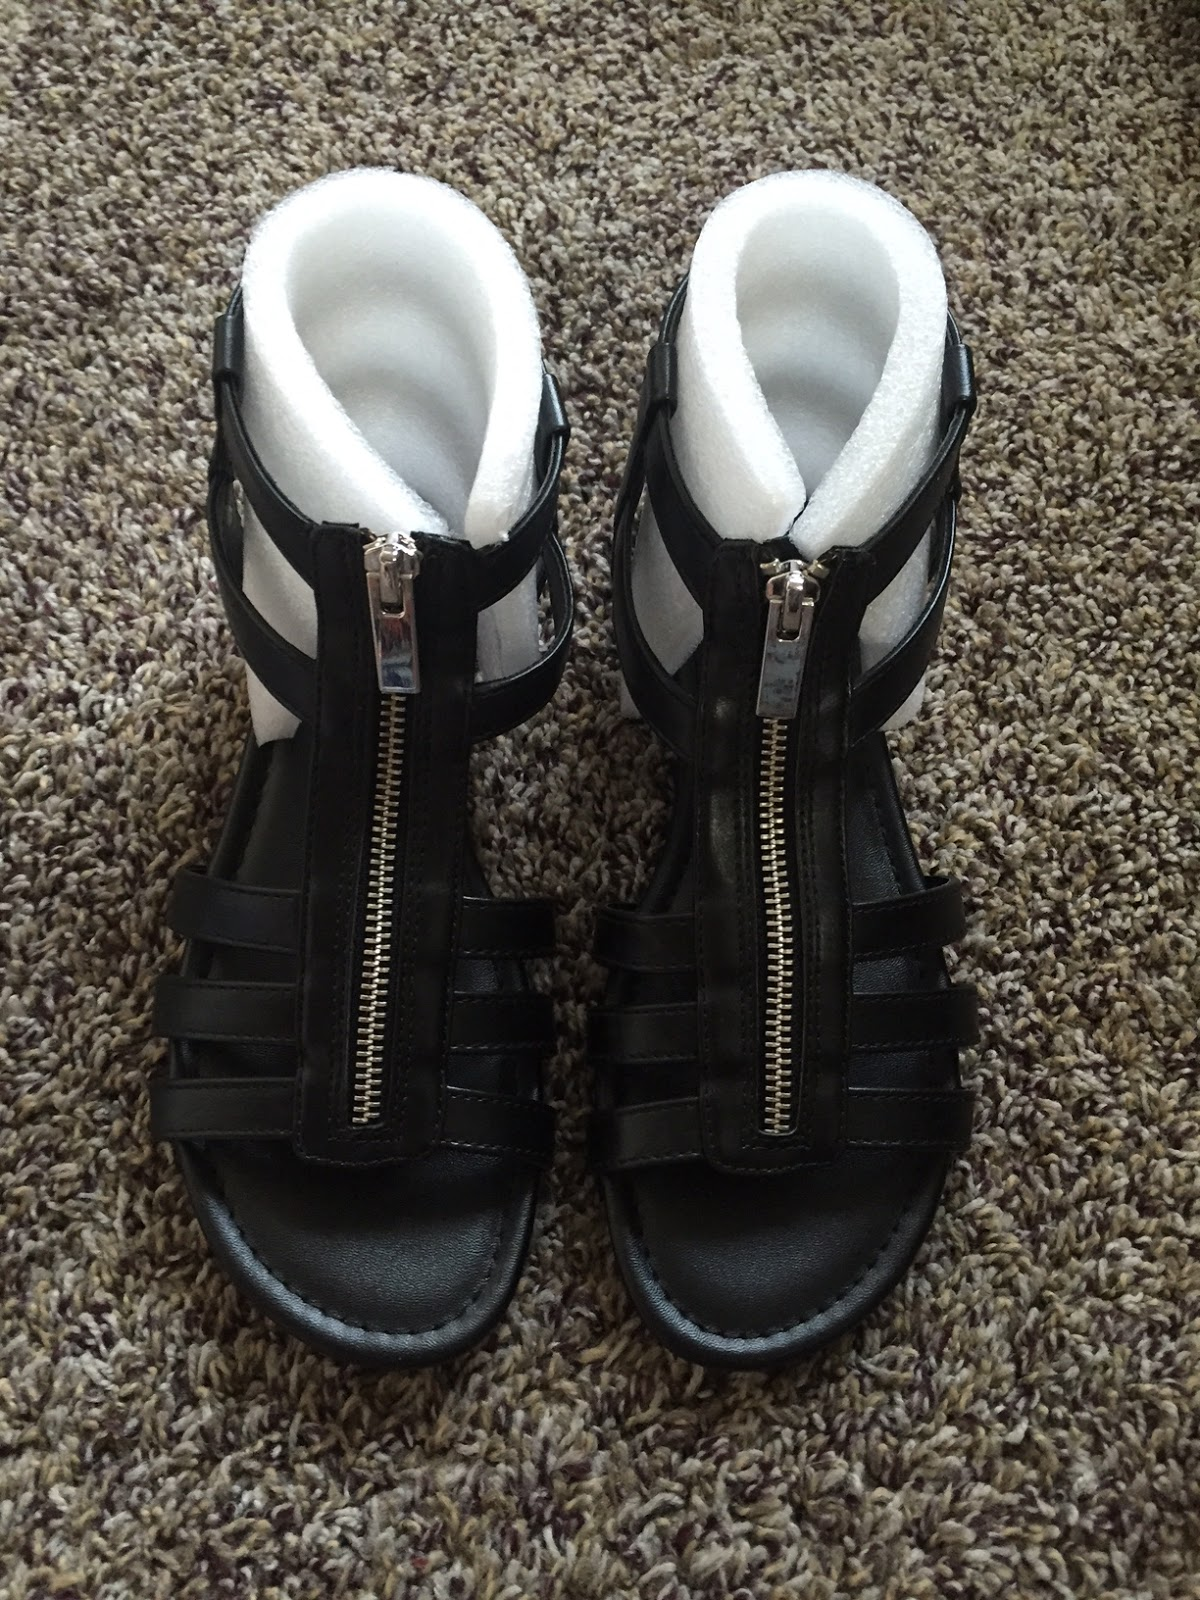 Mommy S Favorite Things White Mountain Shoes Review